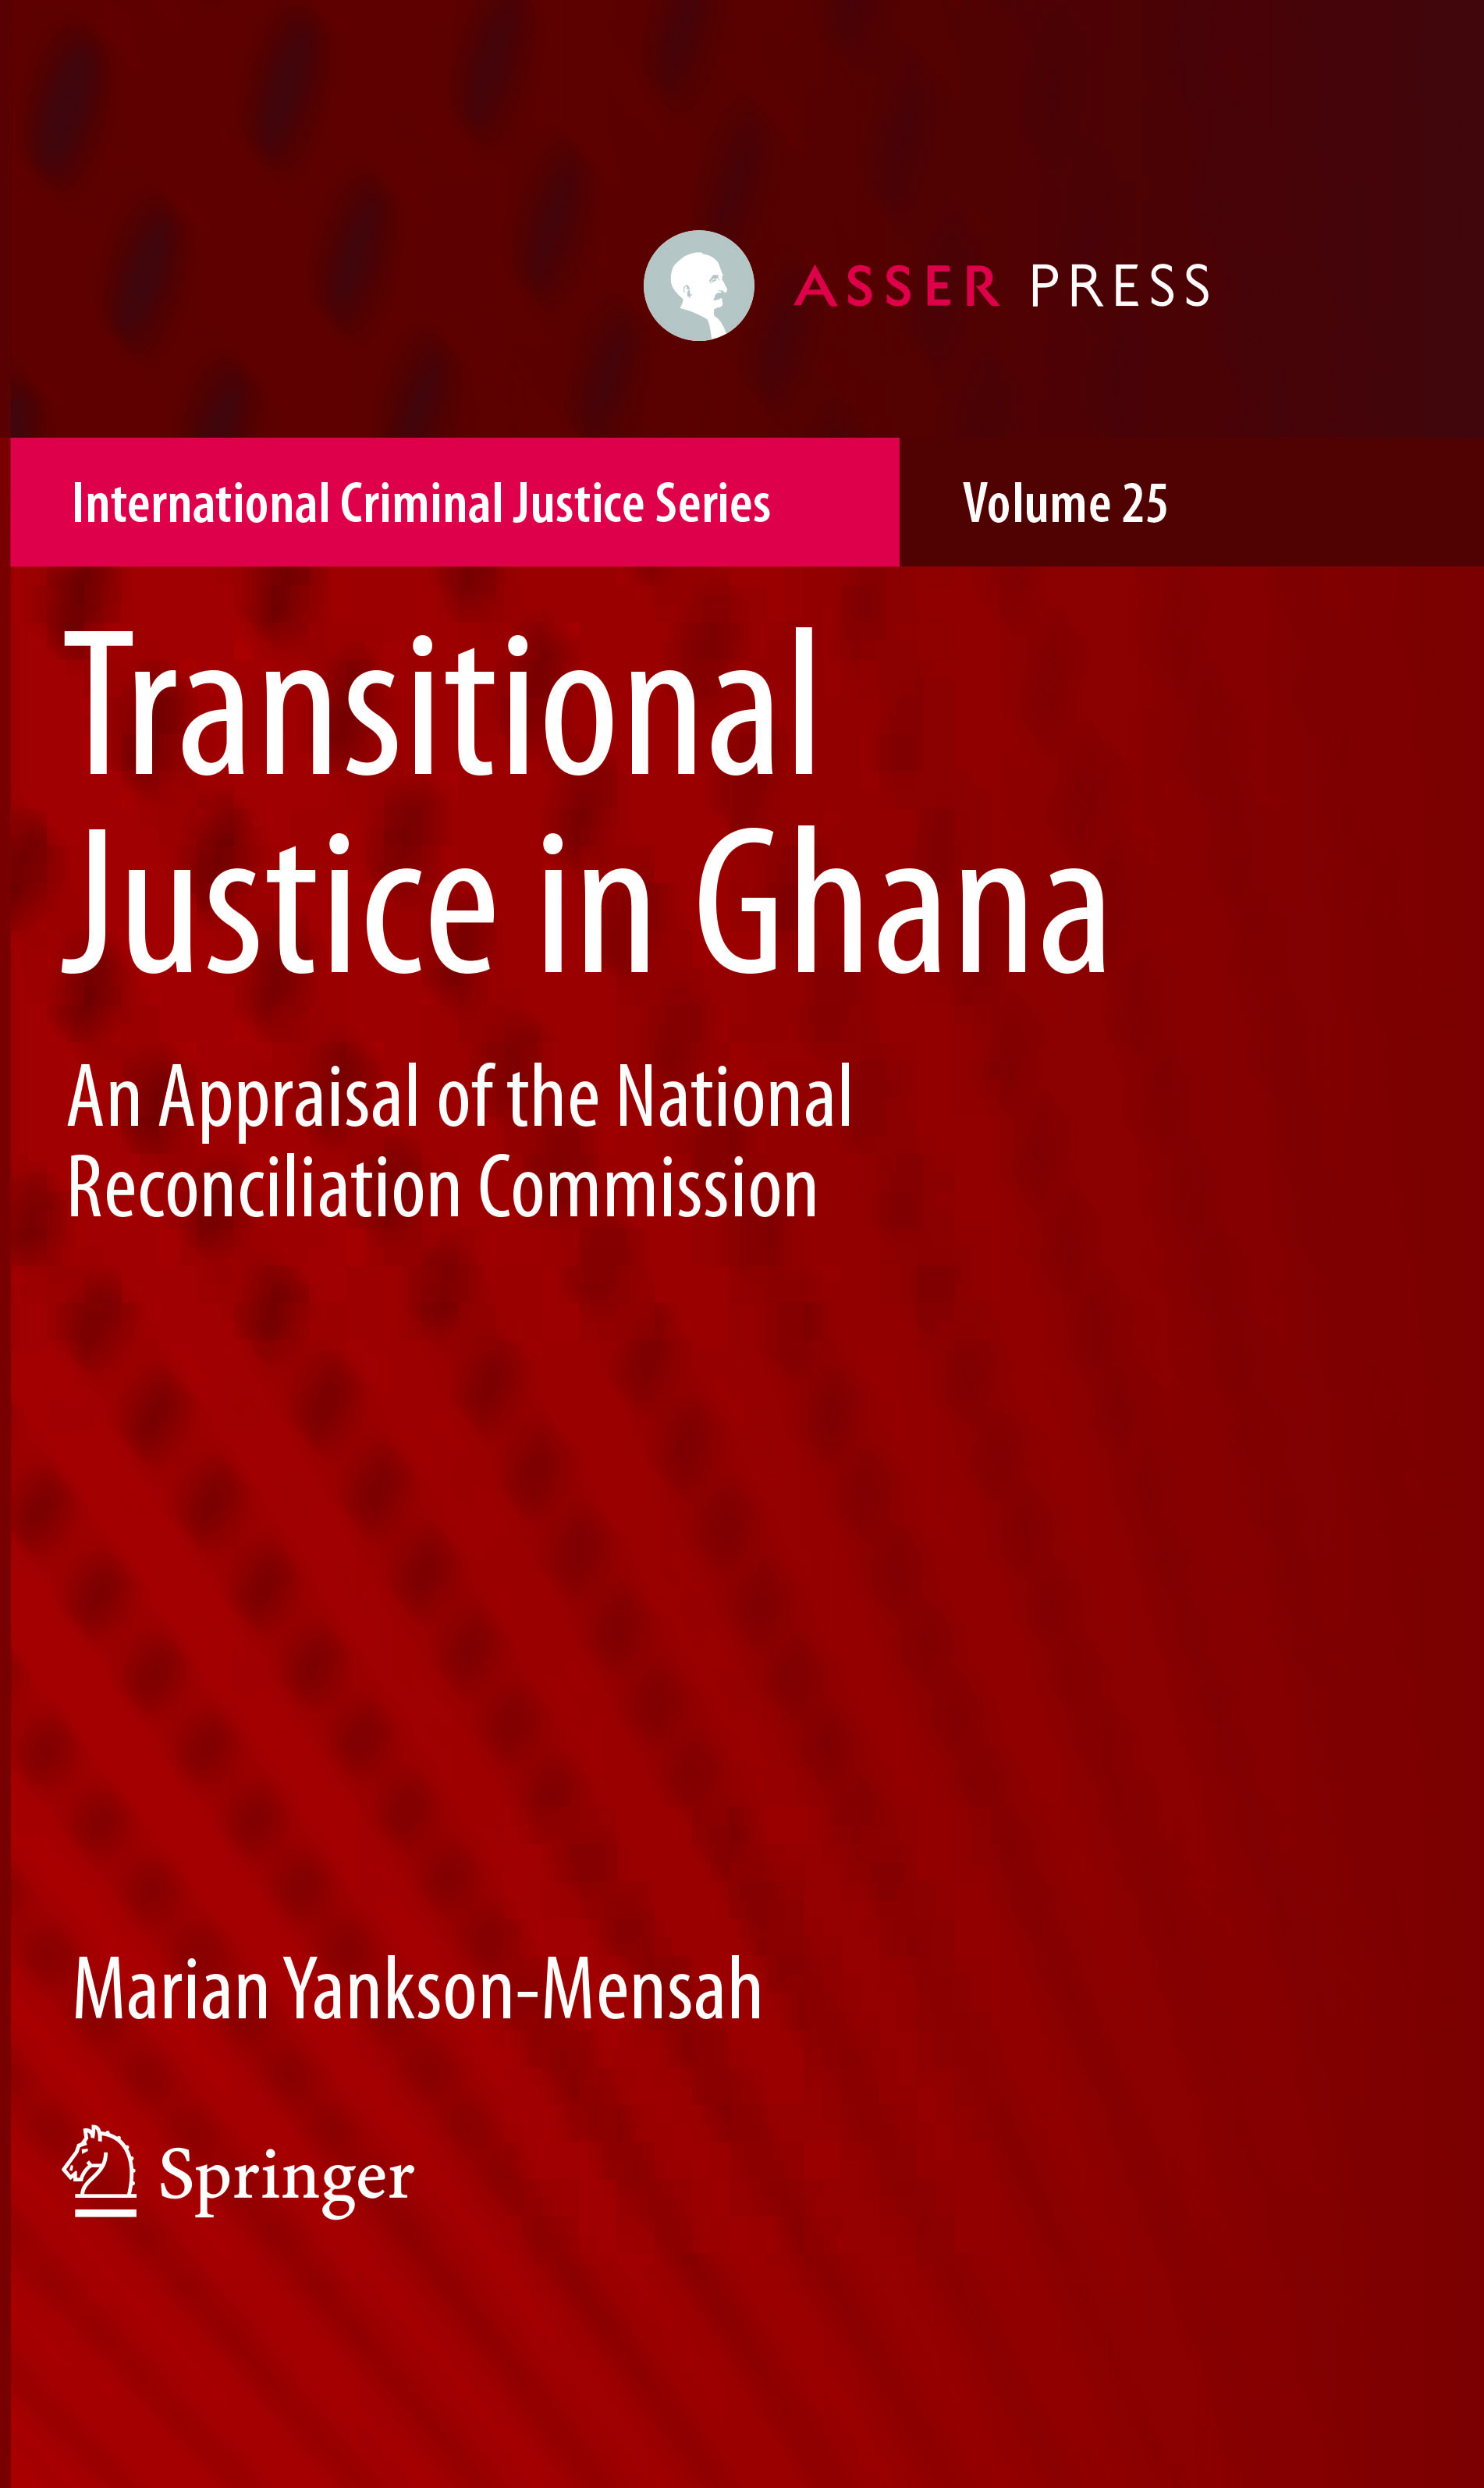 Transitional Justice in Ghana - An Appraisal of the National Reconciliation Commission